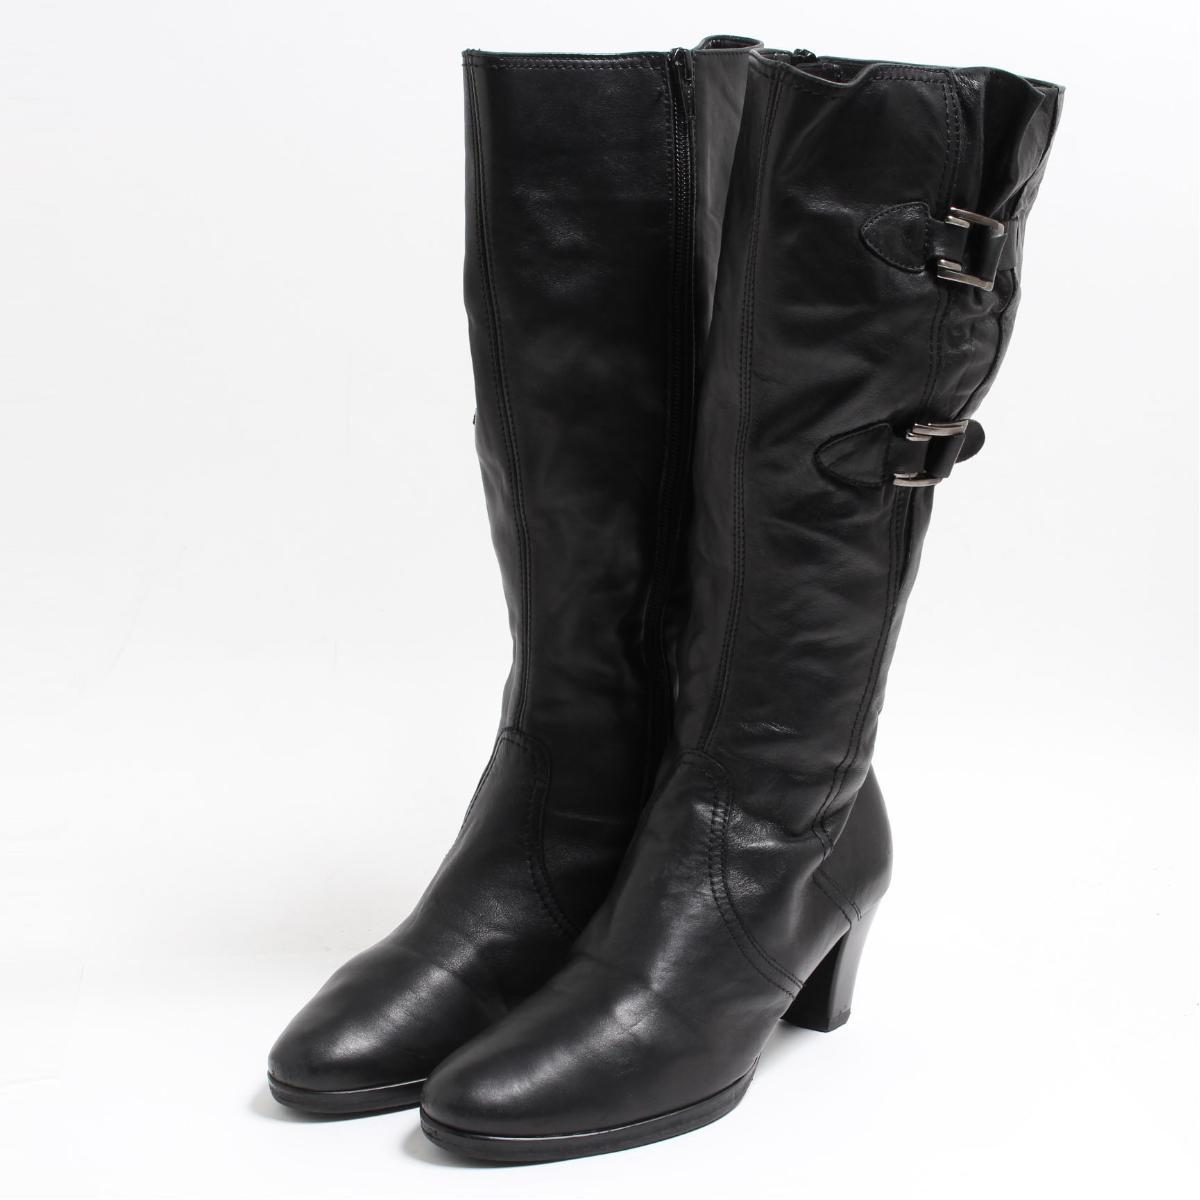 b85cacdf9c61a VINTAGE CLOTHING JAM: GABOR side zip long boots 4.5 Lady's 22.5cm ...